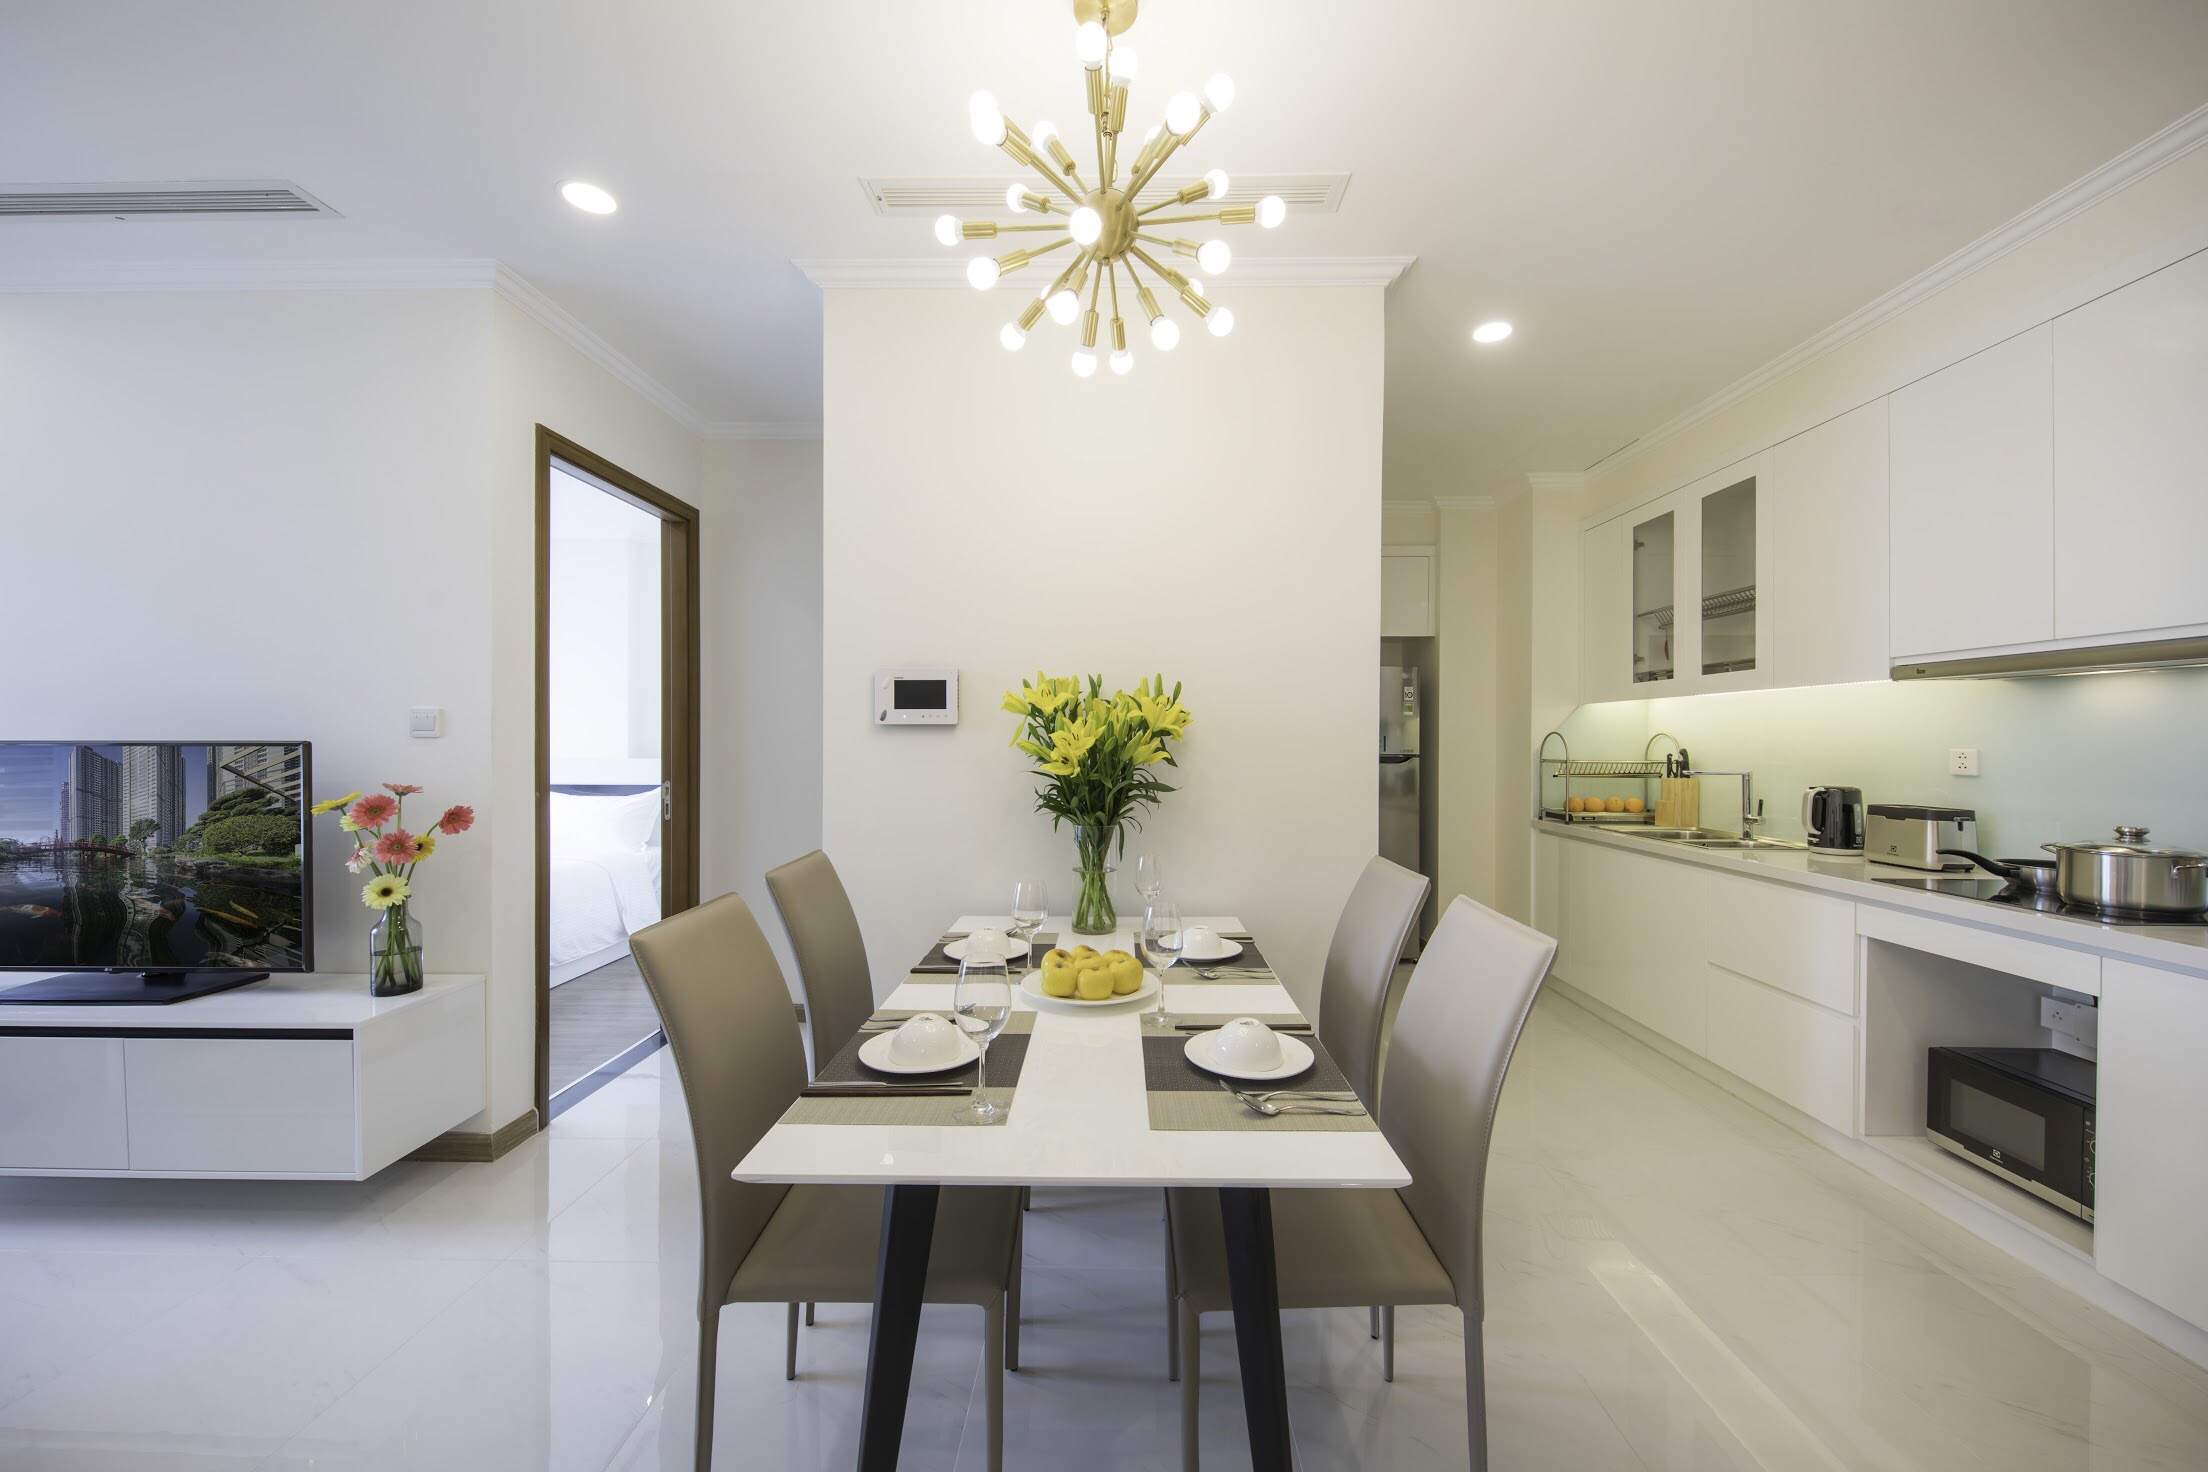 vinhomes central park apartment for rent in binh thanh district hcmc BT105L533 (4)